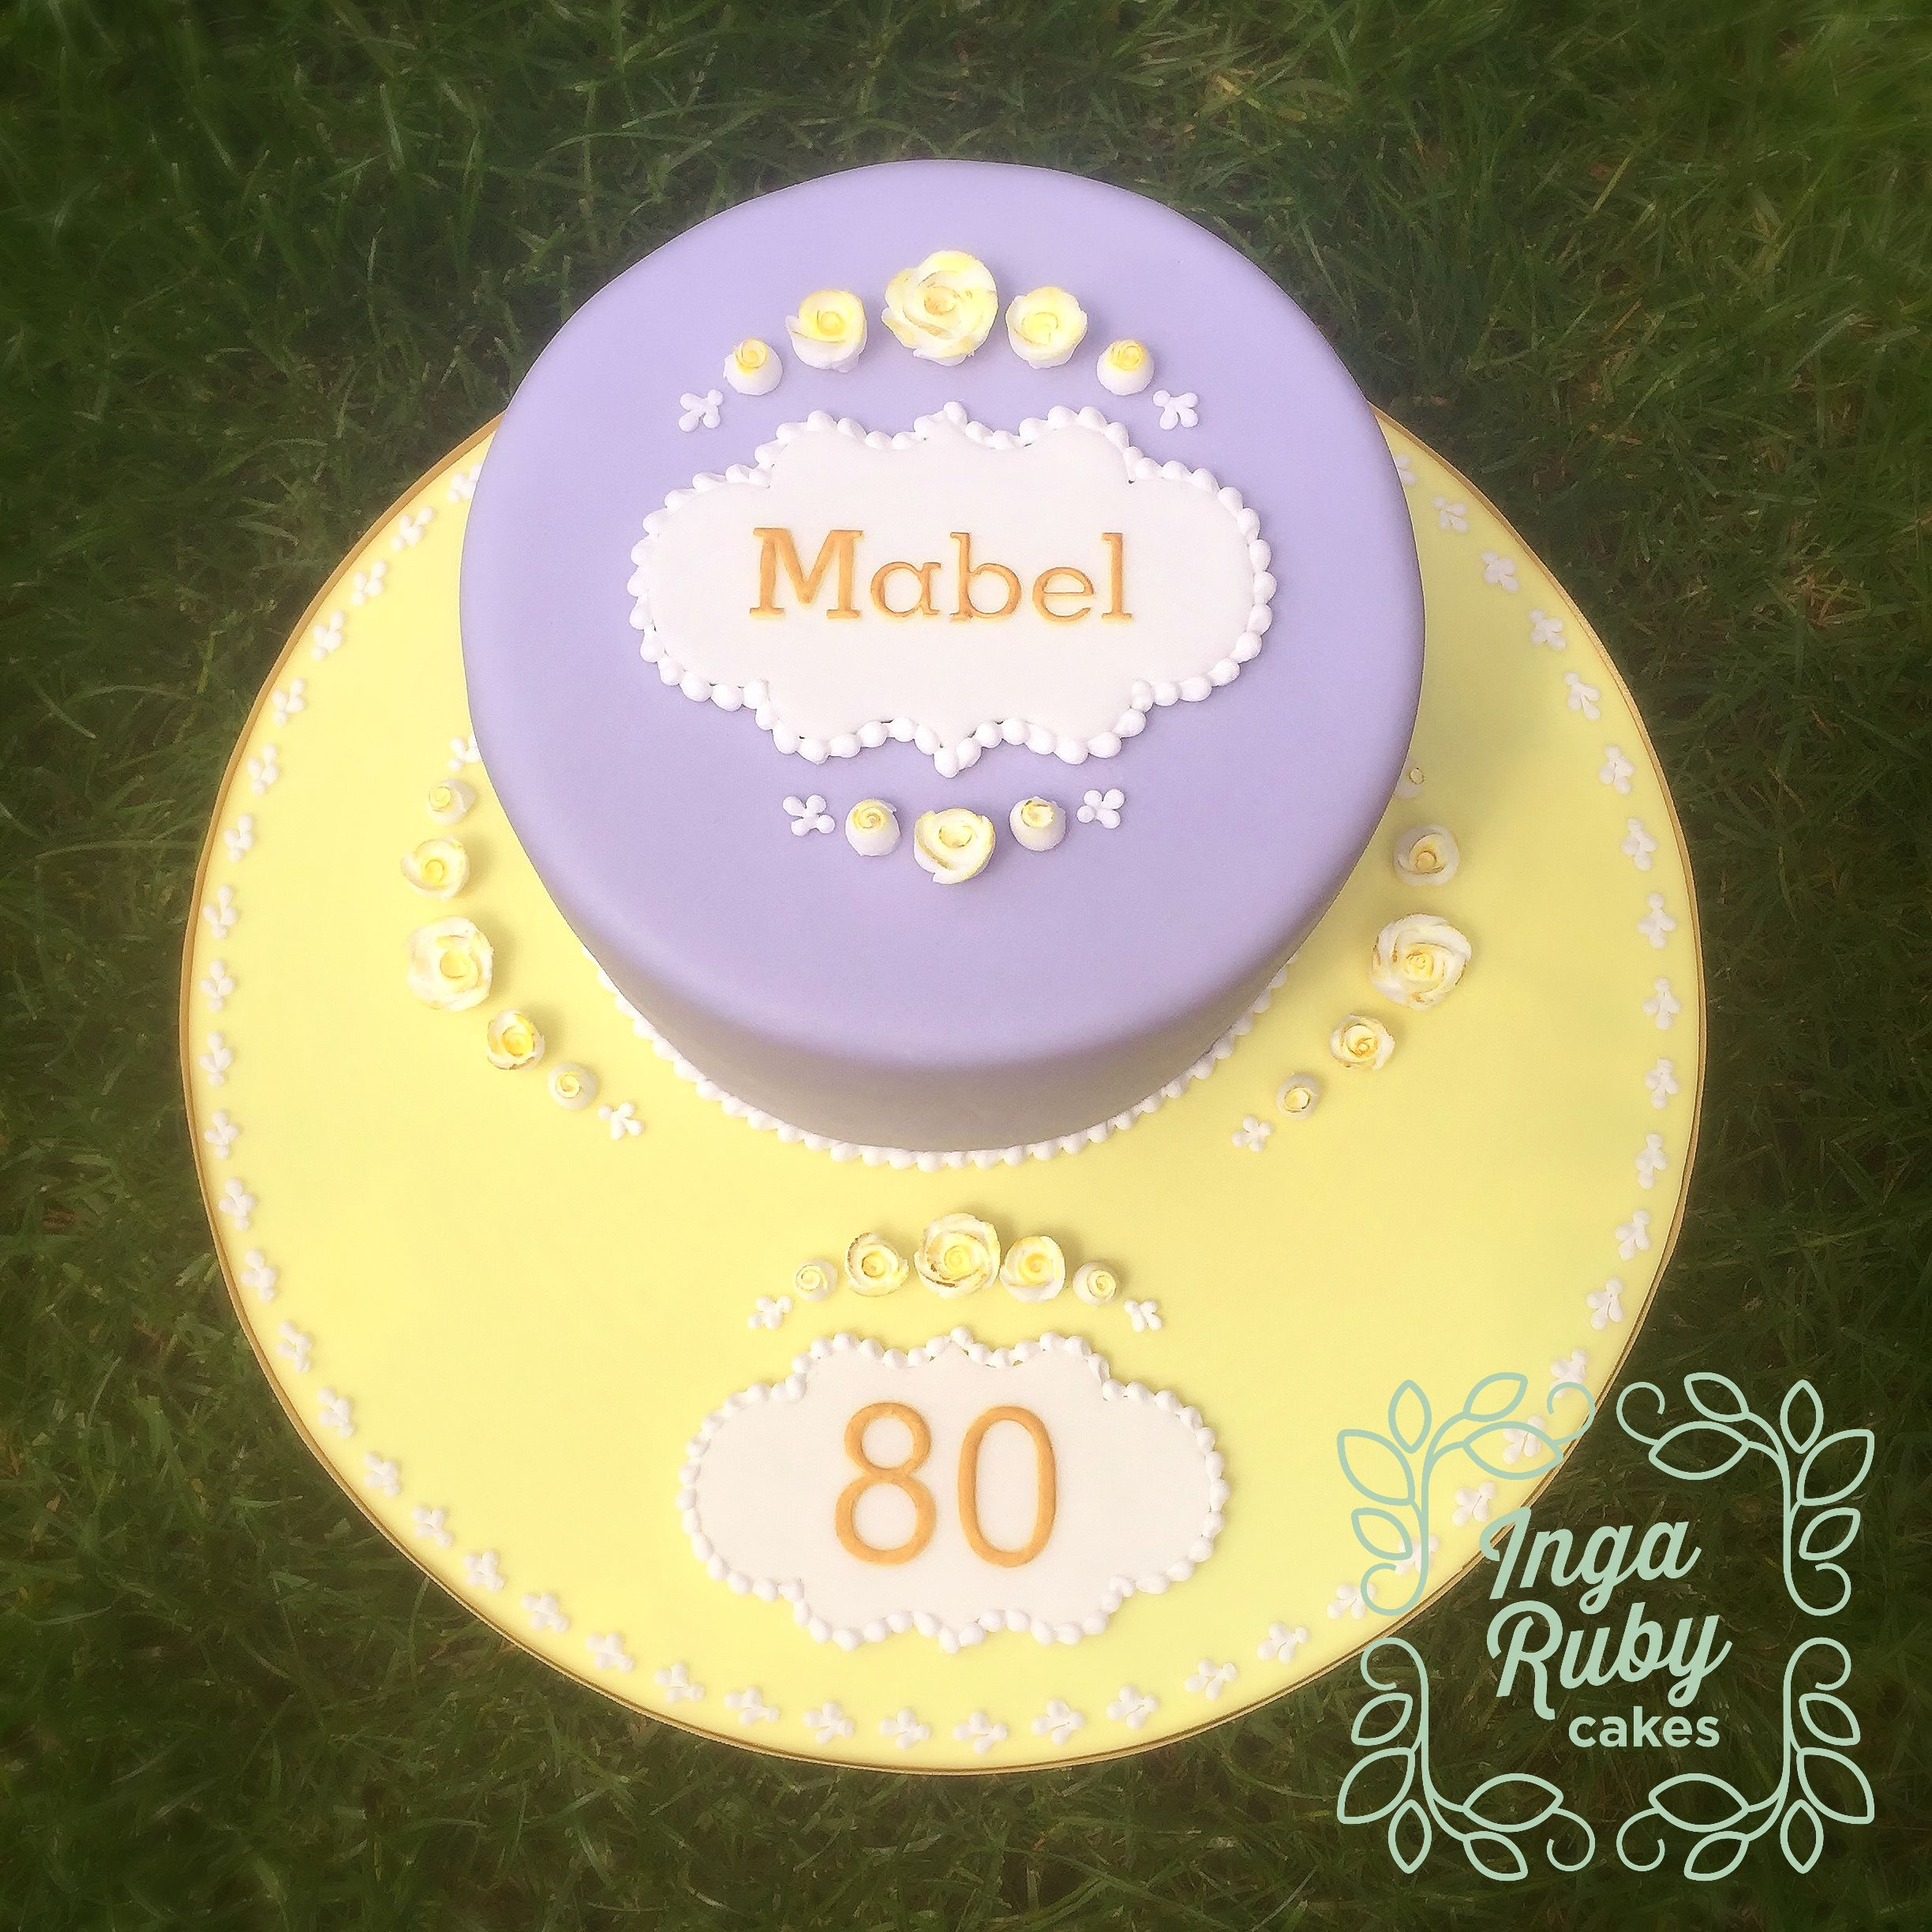 80th Birthday Cake with Royal Icing details